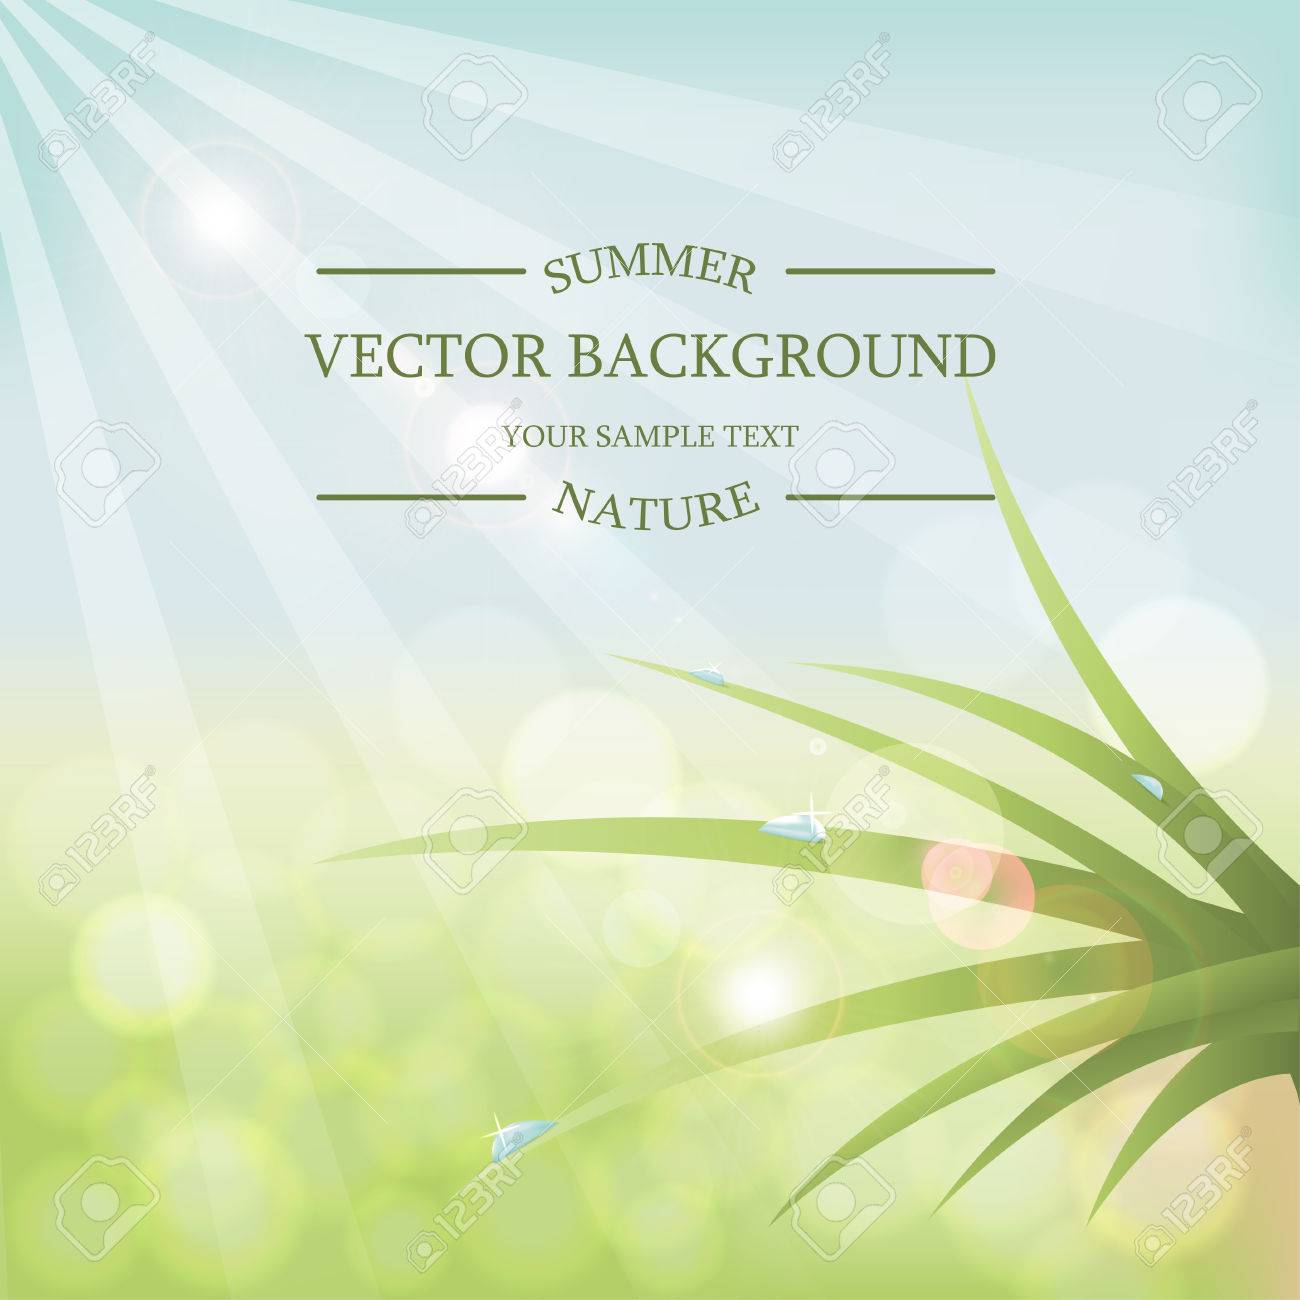 Vector summer background with sunlight. Green grass with dew drops - 54141553